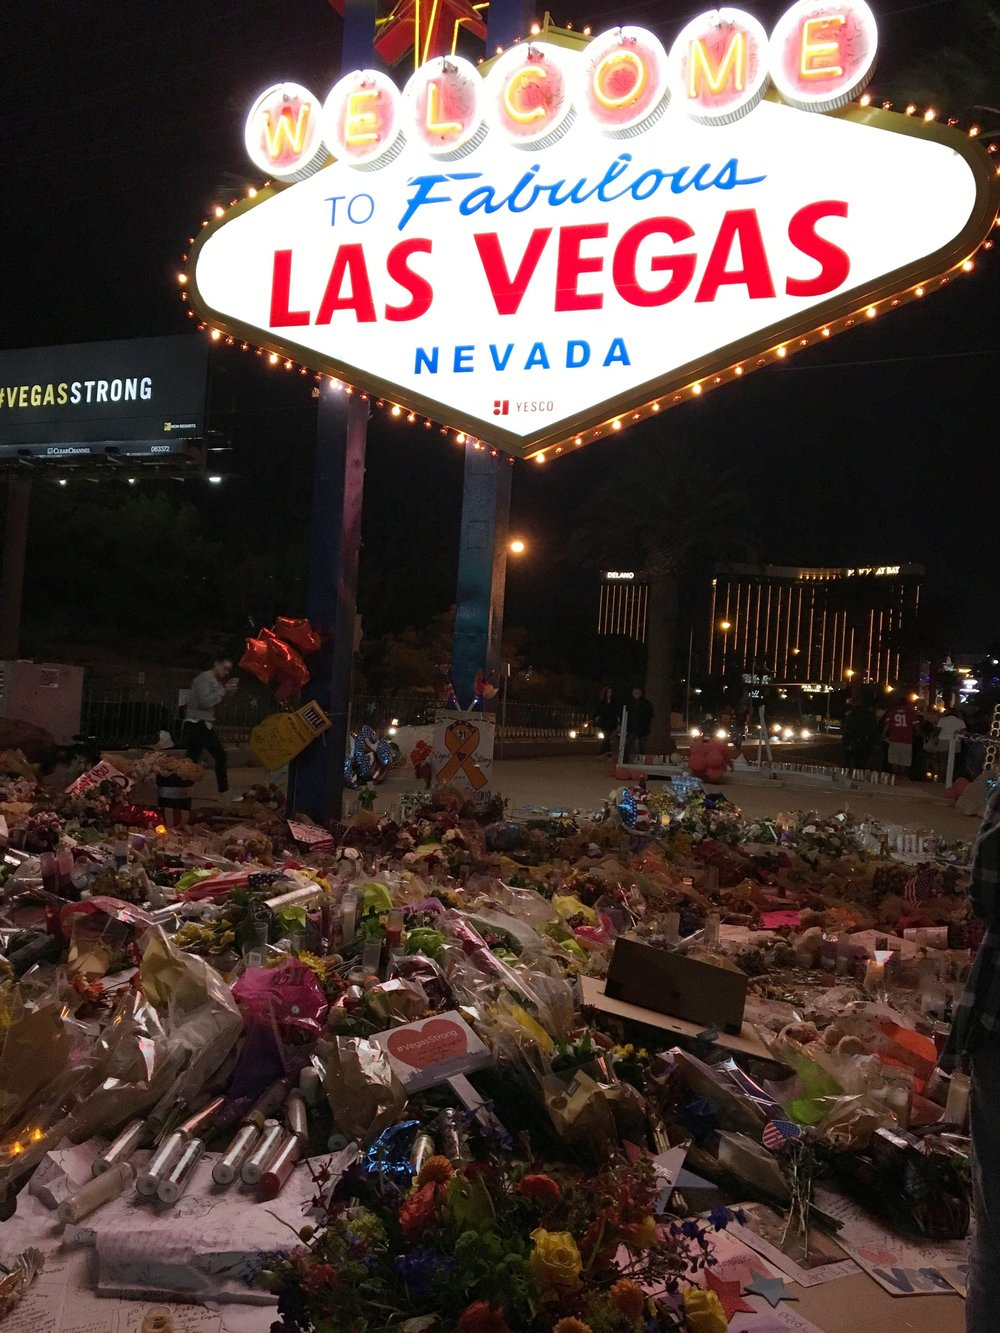 Las Vegas, Nevada - (Responding to Trauma During a Local Crisis)23, K-12 Educators, Engaged in Trauma-Informed Professional Development weeks following the October 1st, 2017 Route 91 Mass Shooting.